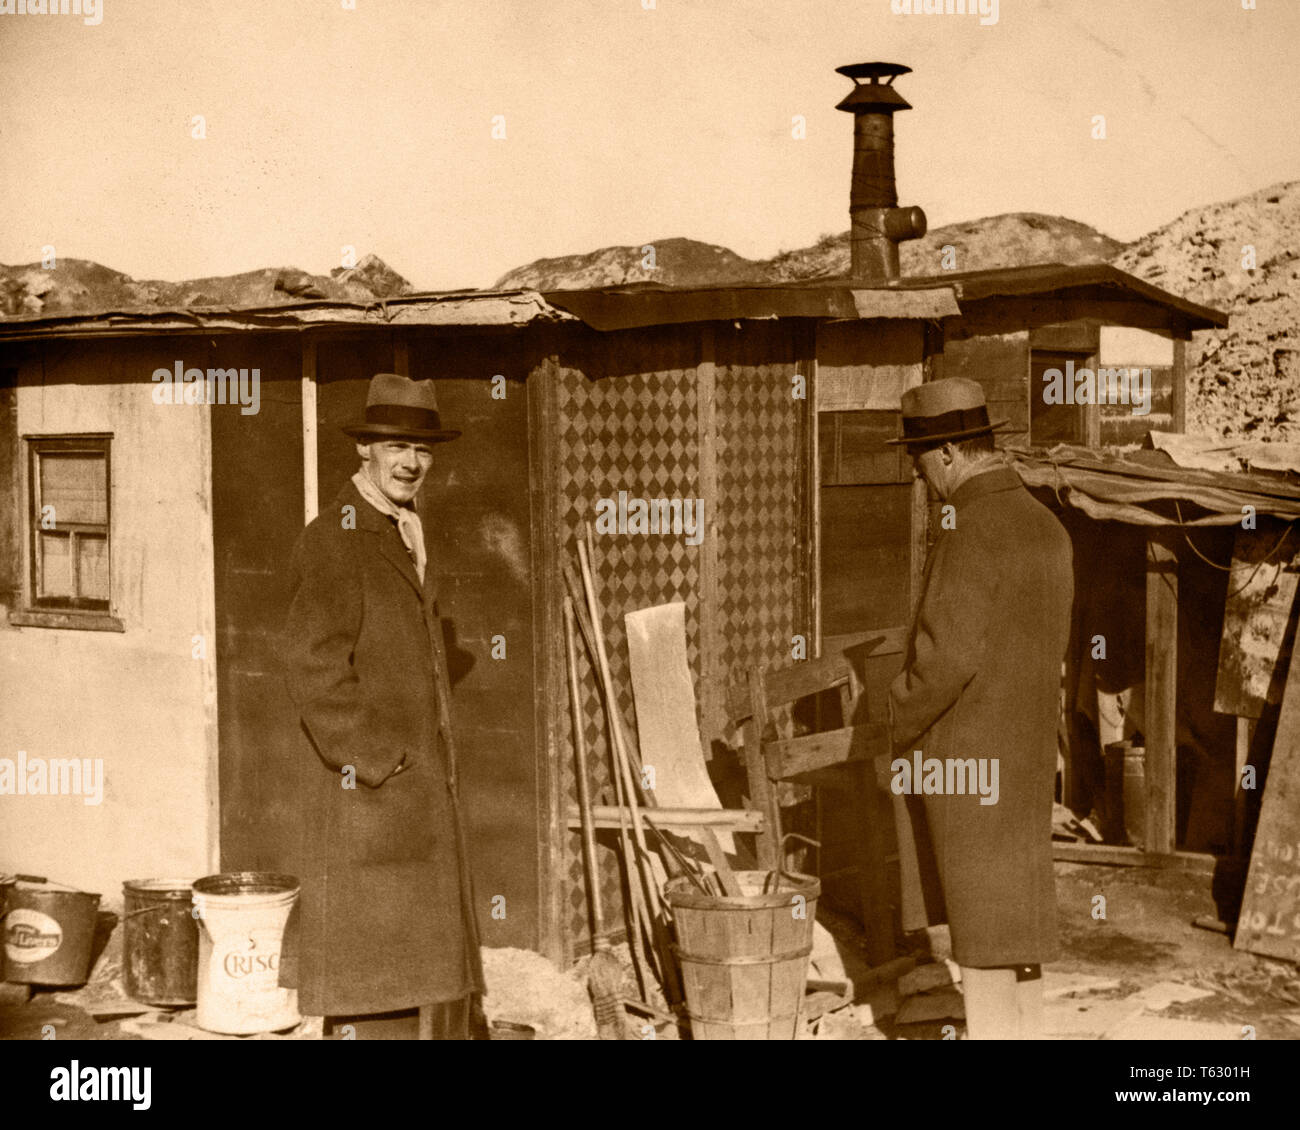 1930s TWO MEN IN HATS AND OVERCOATS STANDING BY HOOVERVILLE SHANTY TOWN TRAILER PARK DEPRESSION VILLAGE VARIOUS CITIES USA - q73981 CPC001 HARS COPY SPACE FULL-LENGTH PERSONS VILLAGE UNITED STATES OF AMERICA MALES RISK ROUGH EXPRESSIONS B&W SADNESS SHELTER DISASTER HOMELESS STRENGTH STRATEGY AND EXTERIOR POWERFUL PROGRESS CONDITIONS BY IN POLITICS OVERCOATS CONCEPTUAL CITIES TEMPORARY VARIOUS ANONYMOUS BUILT COOPERATION MID-ADULT MID-ADULT MAN SHANTY TOGETHERNESS BLACK AND WHITE CAUCASIAN ETHNICITY DEFEATED DURING GREAT DEPRESSION HOOVERVILLE OLD FASHIONED SHANTY TOWN - Stock Image